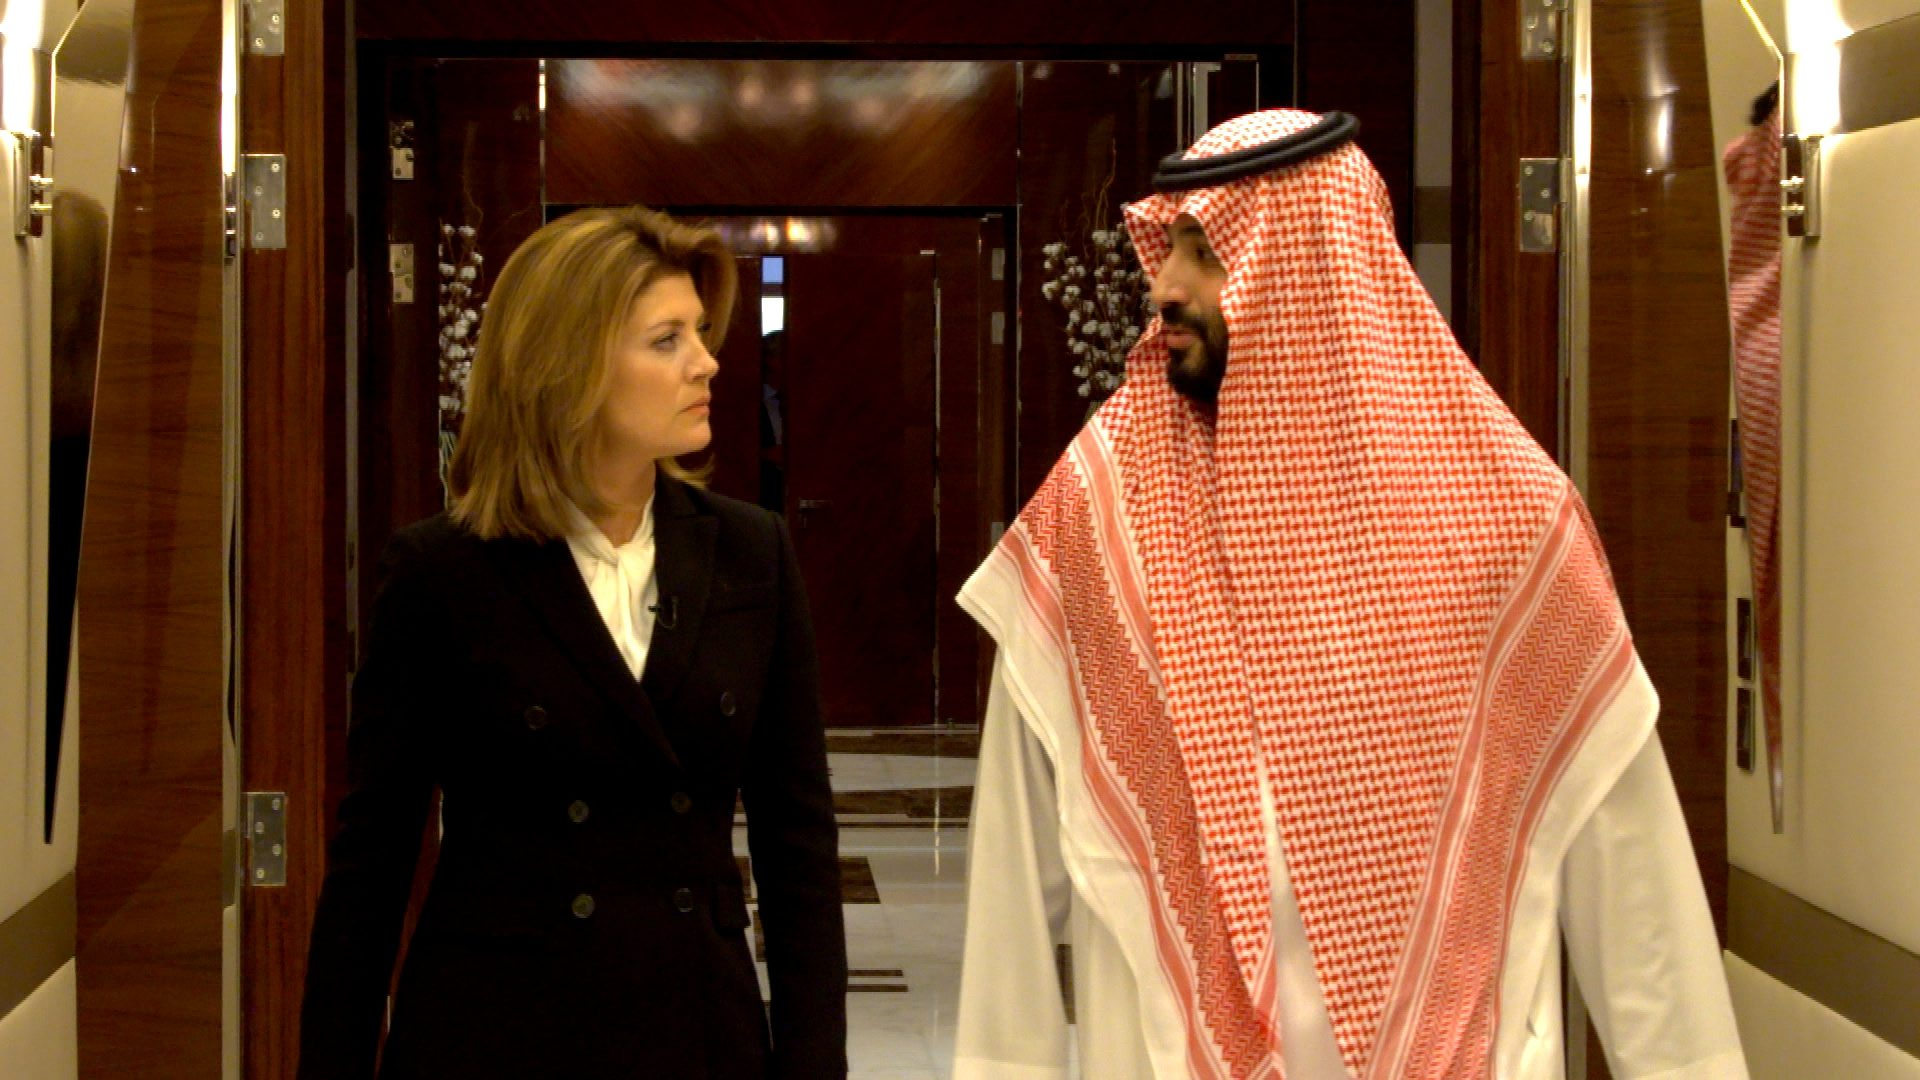 Saudi Arabia's Crown Prince Mohammed bin Salman speaks with correspondent Norah O'Donnell during an interview on Tuesday with the CBS program